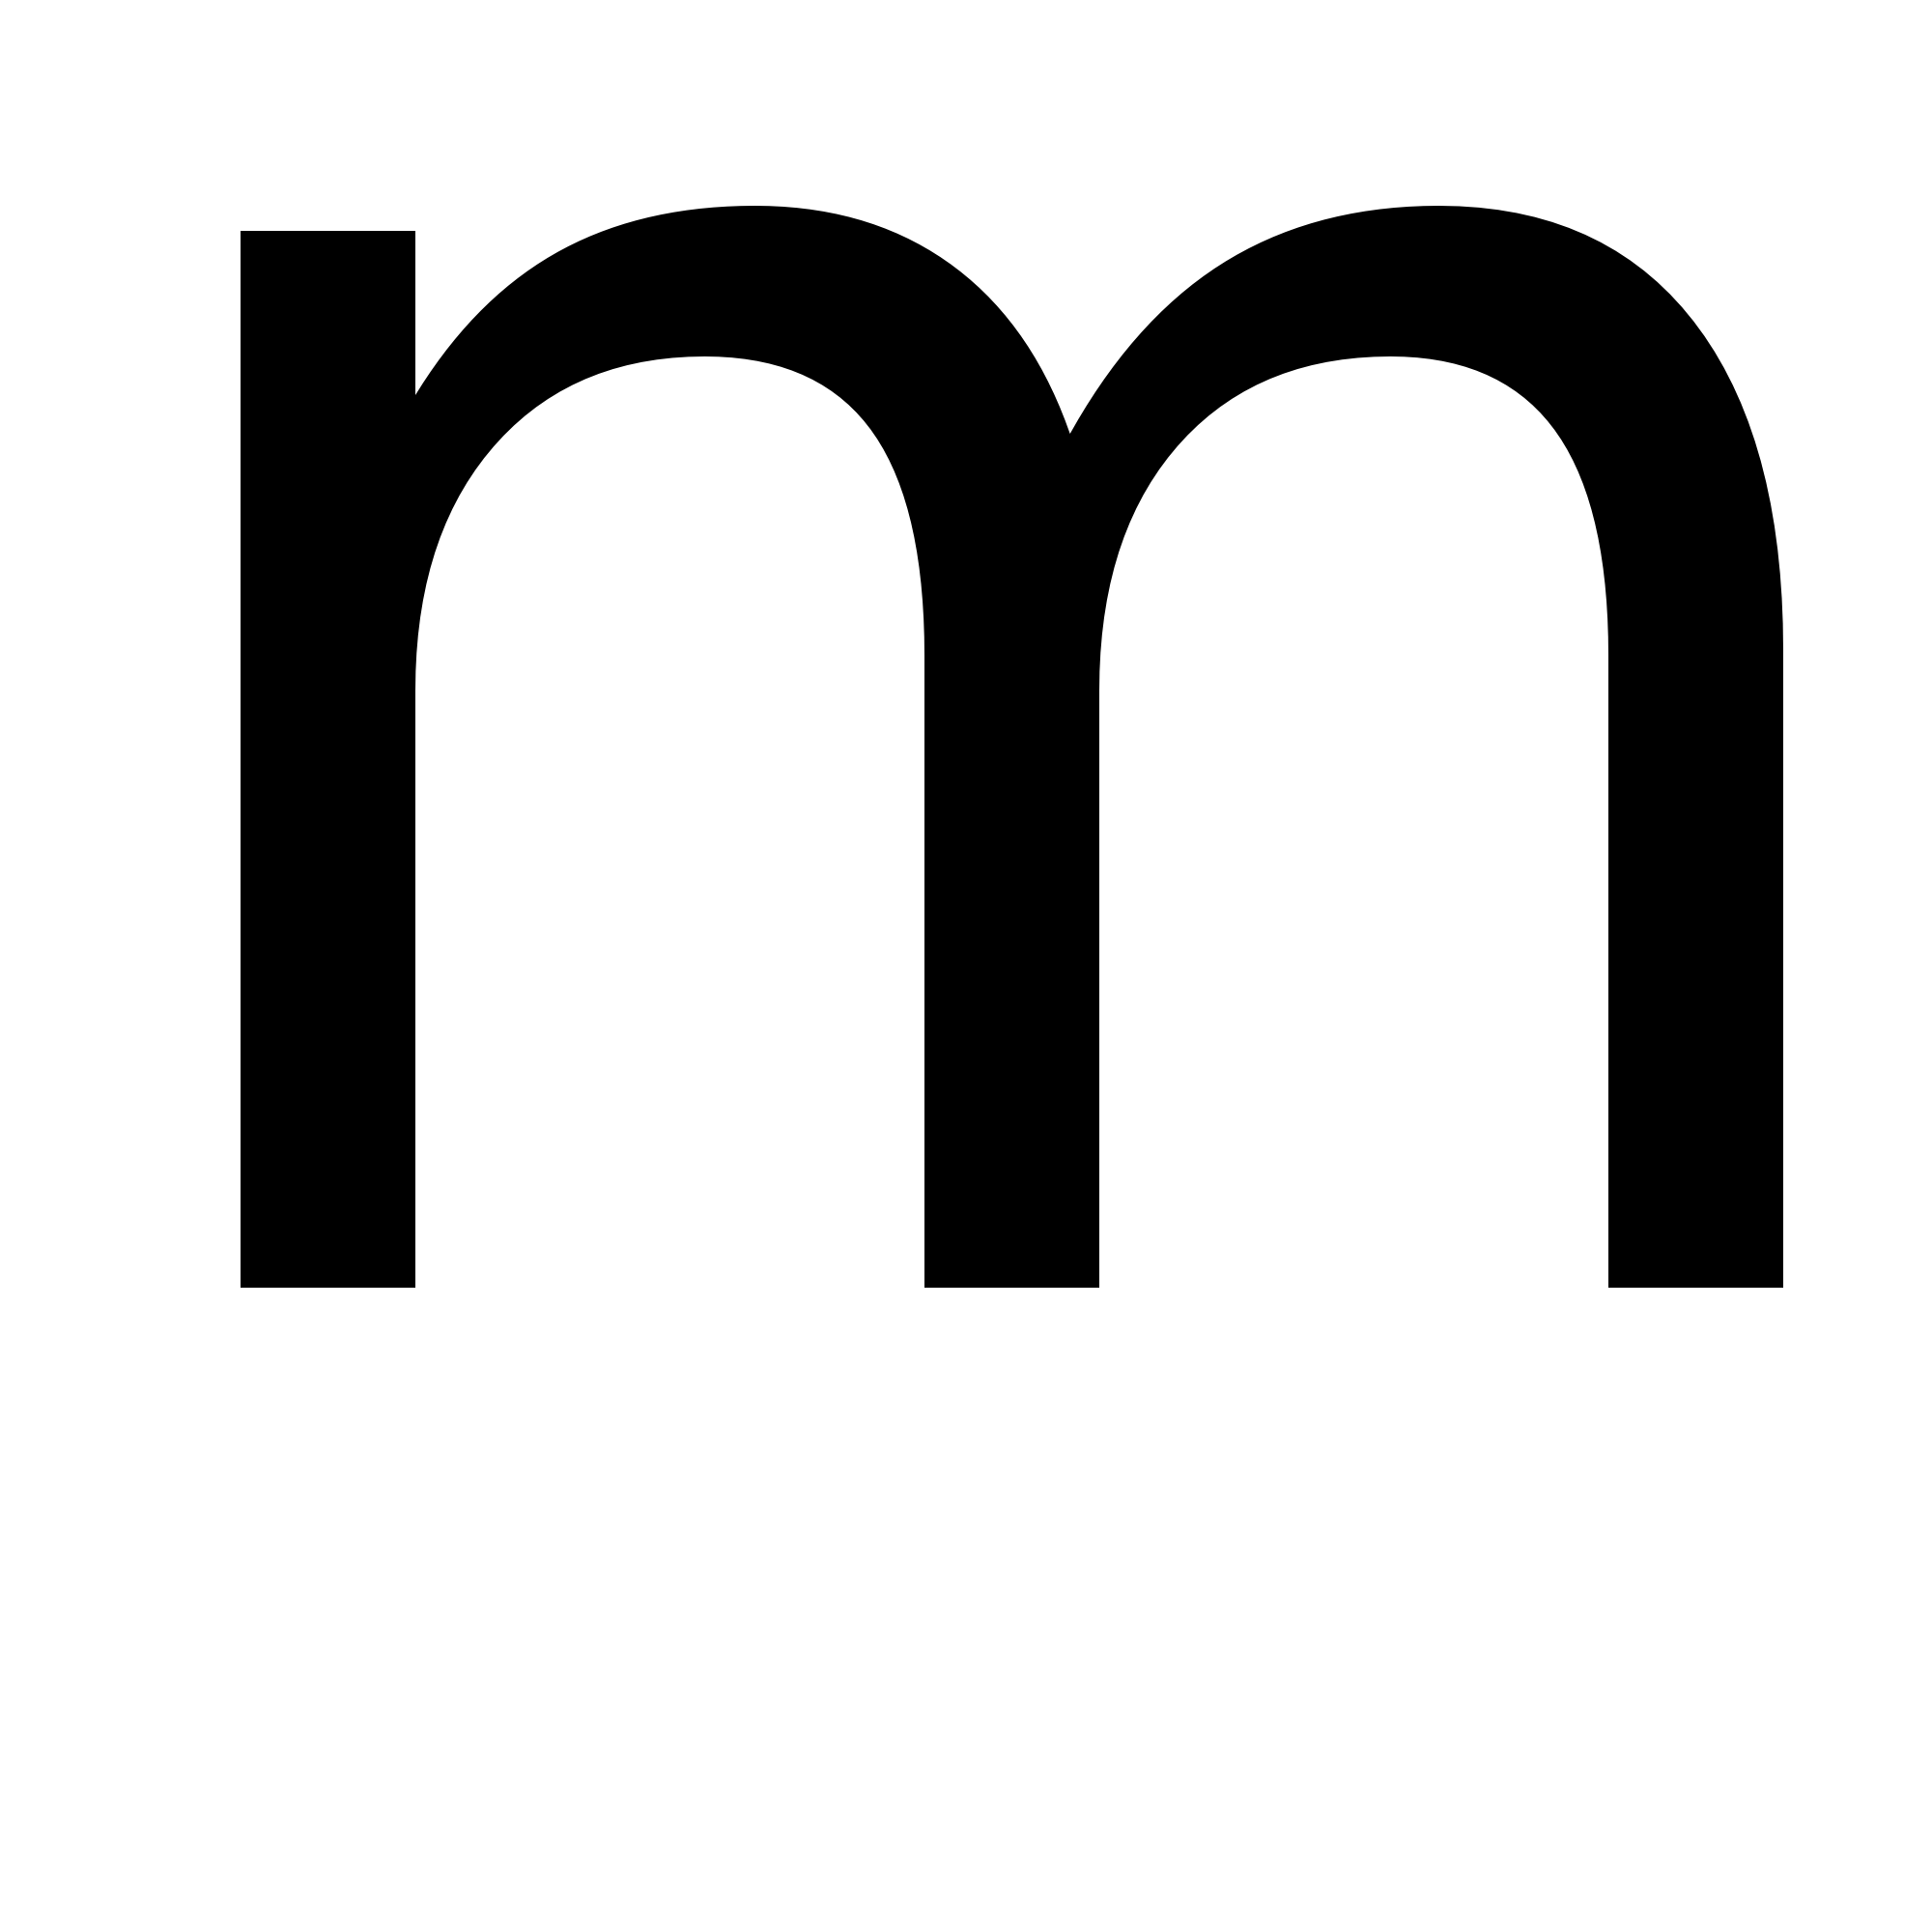 The letter m png. File svg wikimedia commons